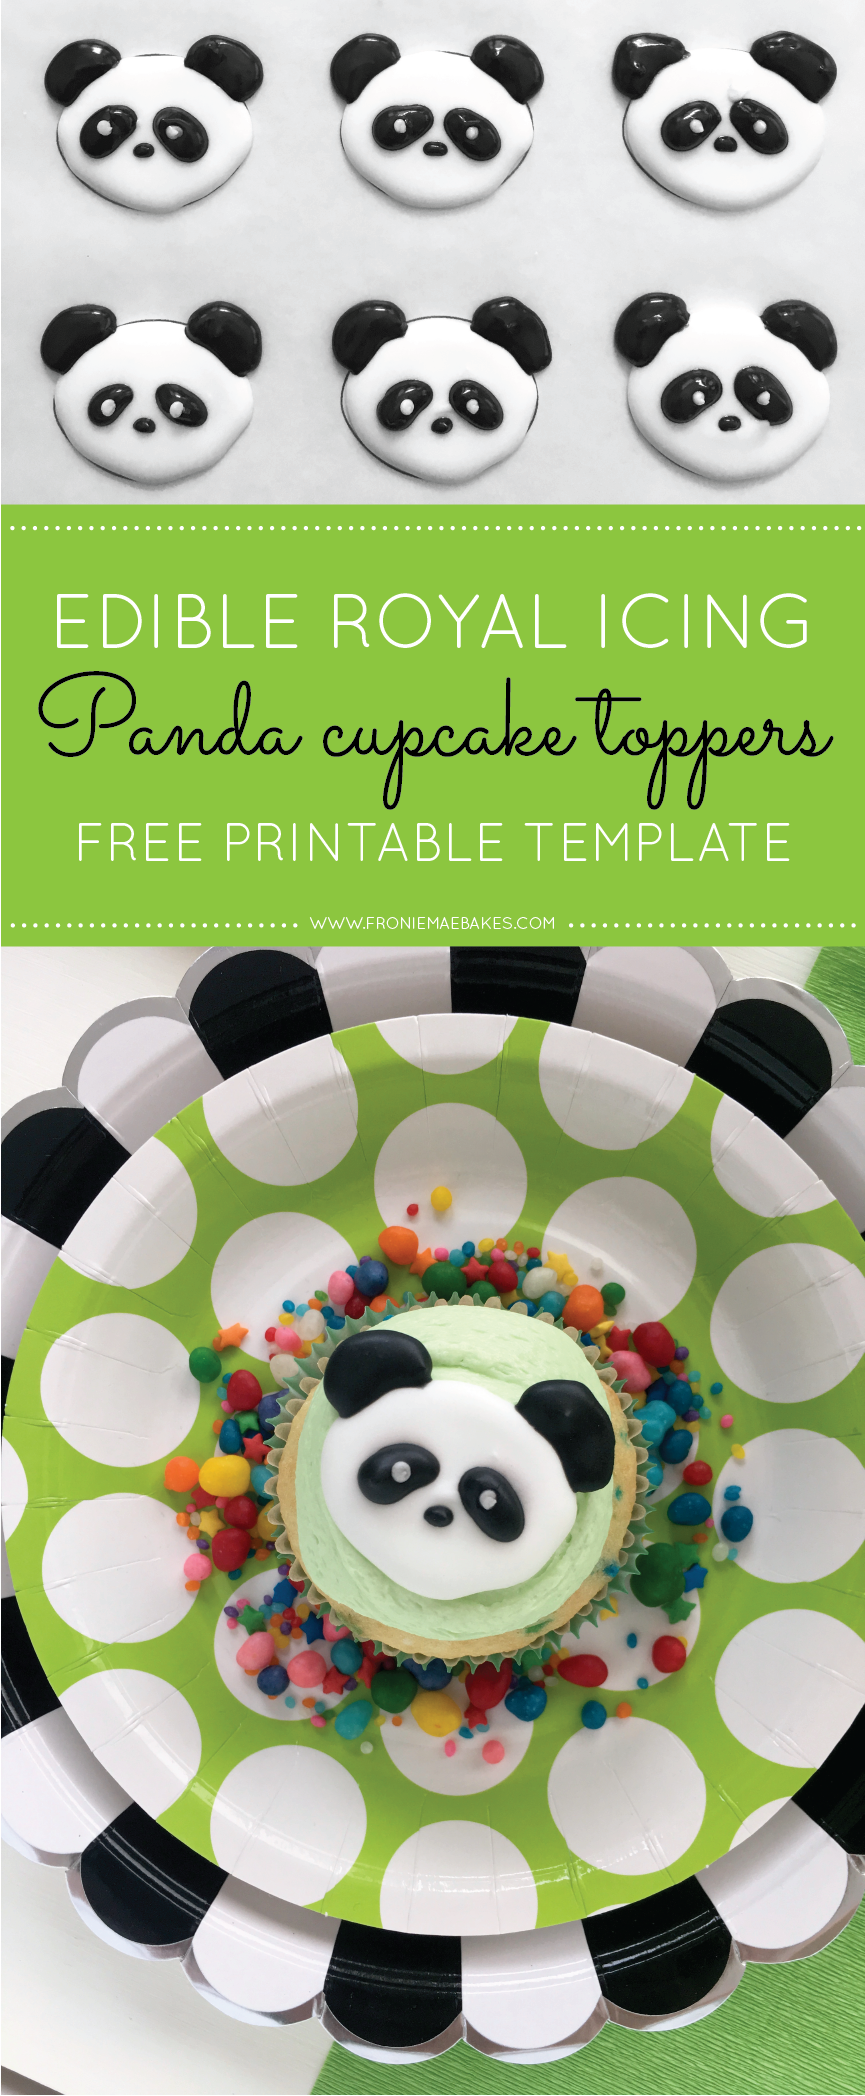 royal icing panda cupcake topper with free printable template